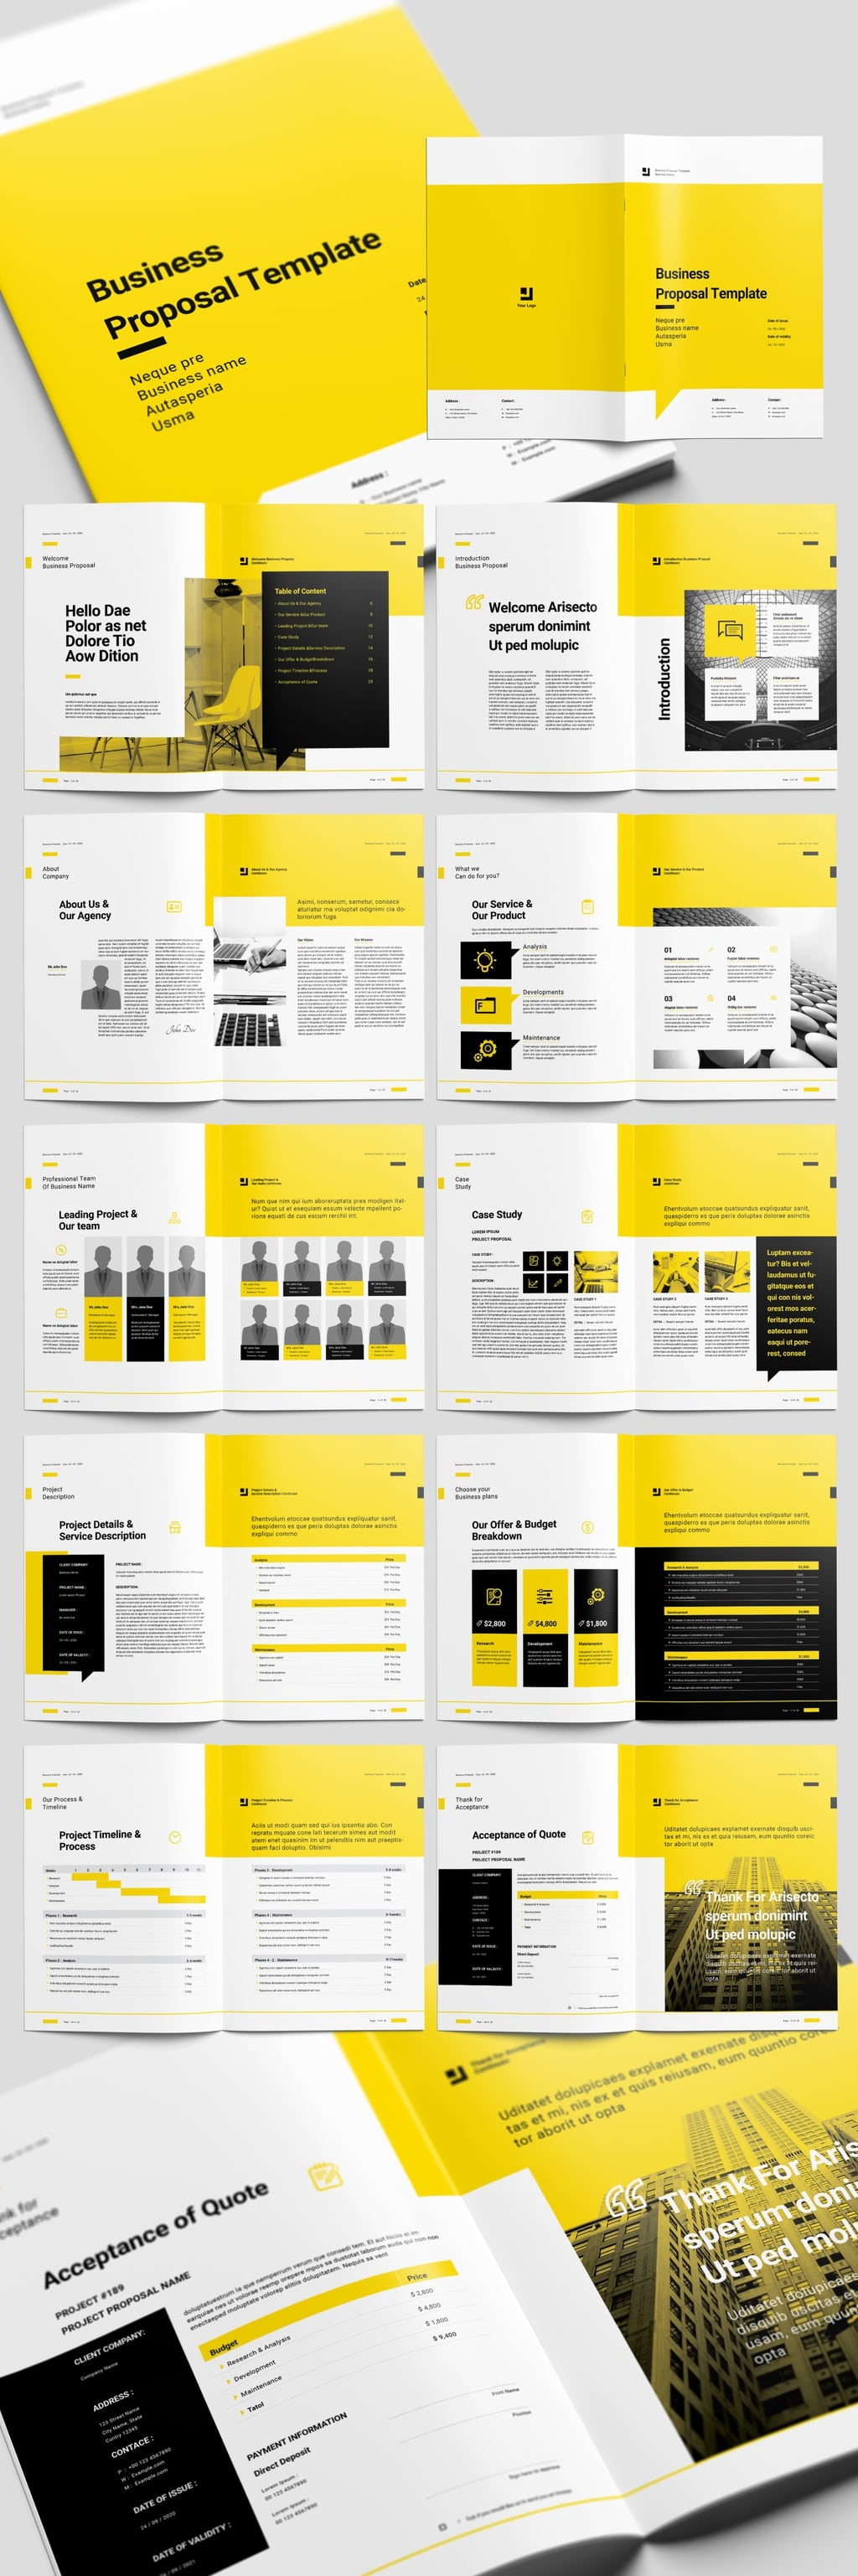 Yellow Proposal Brochure Layout with Black Accents